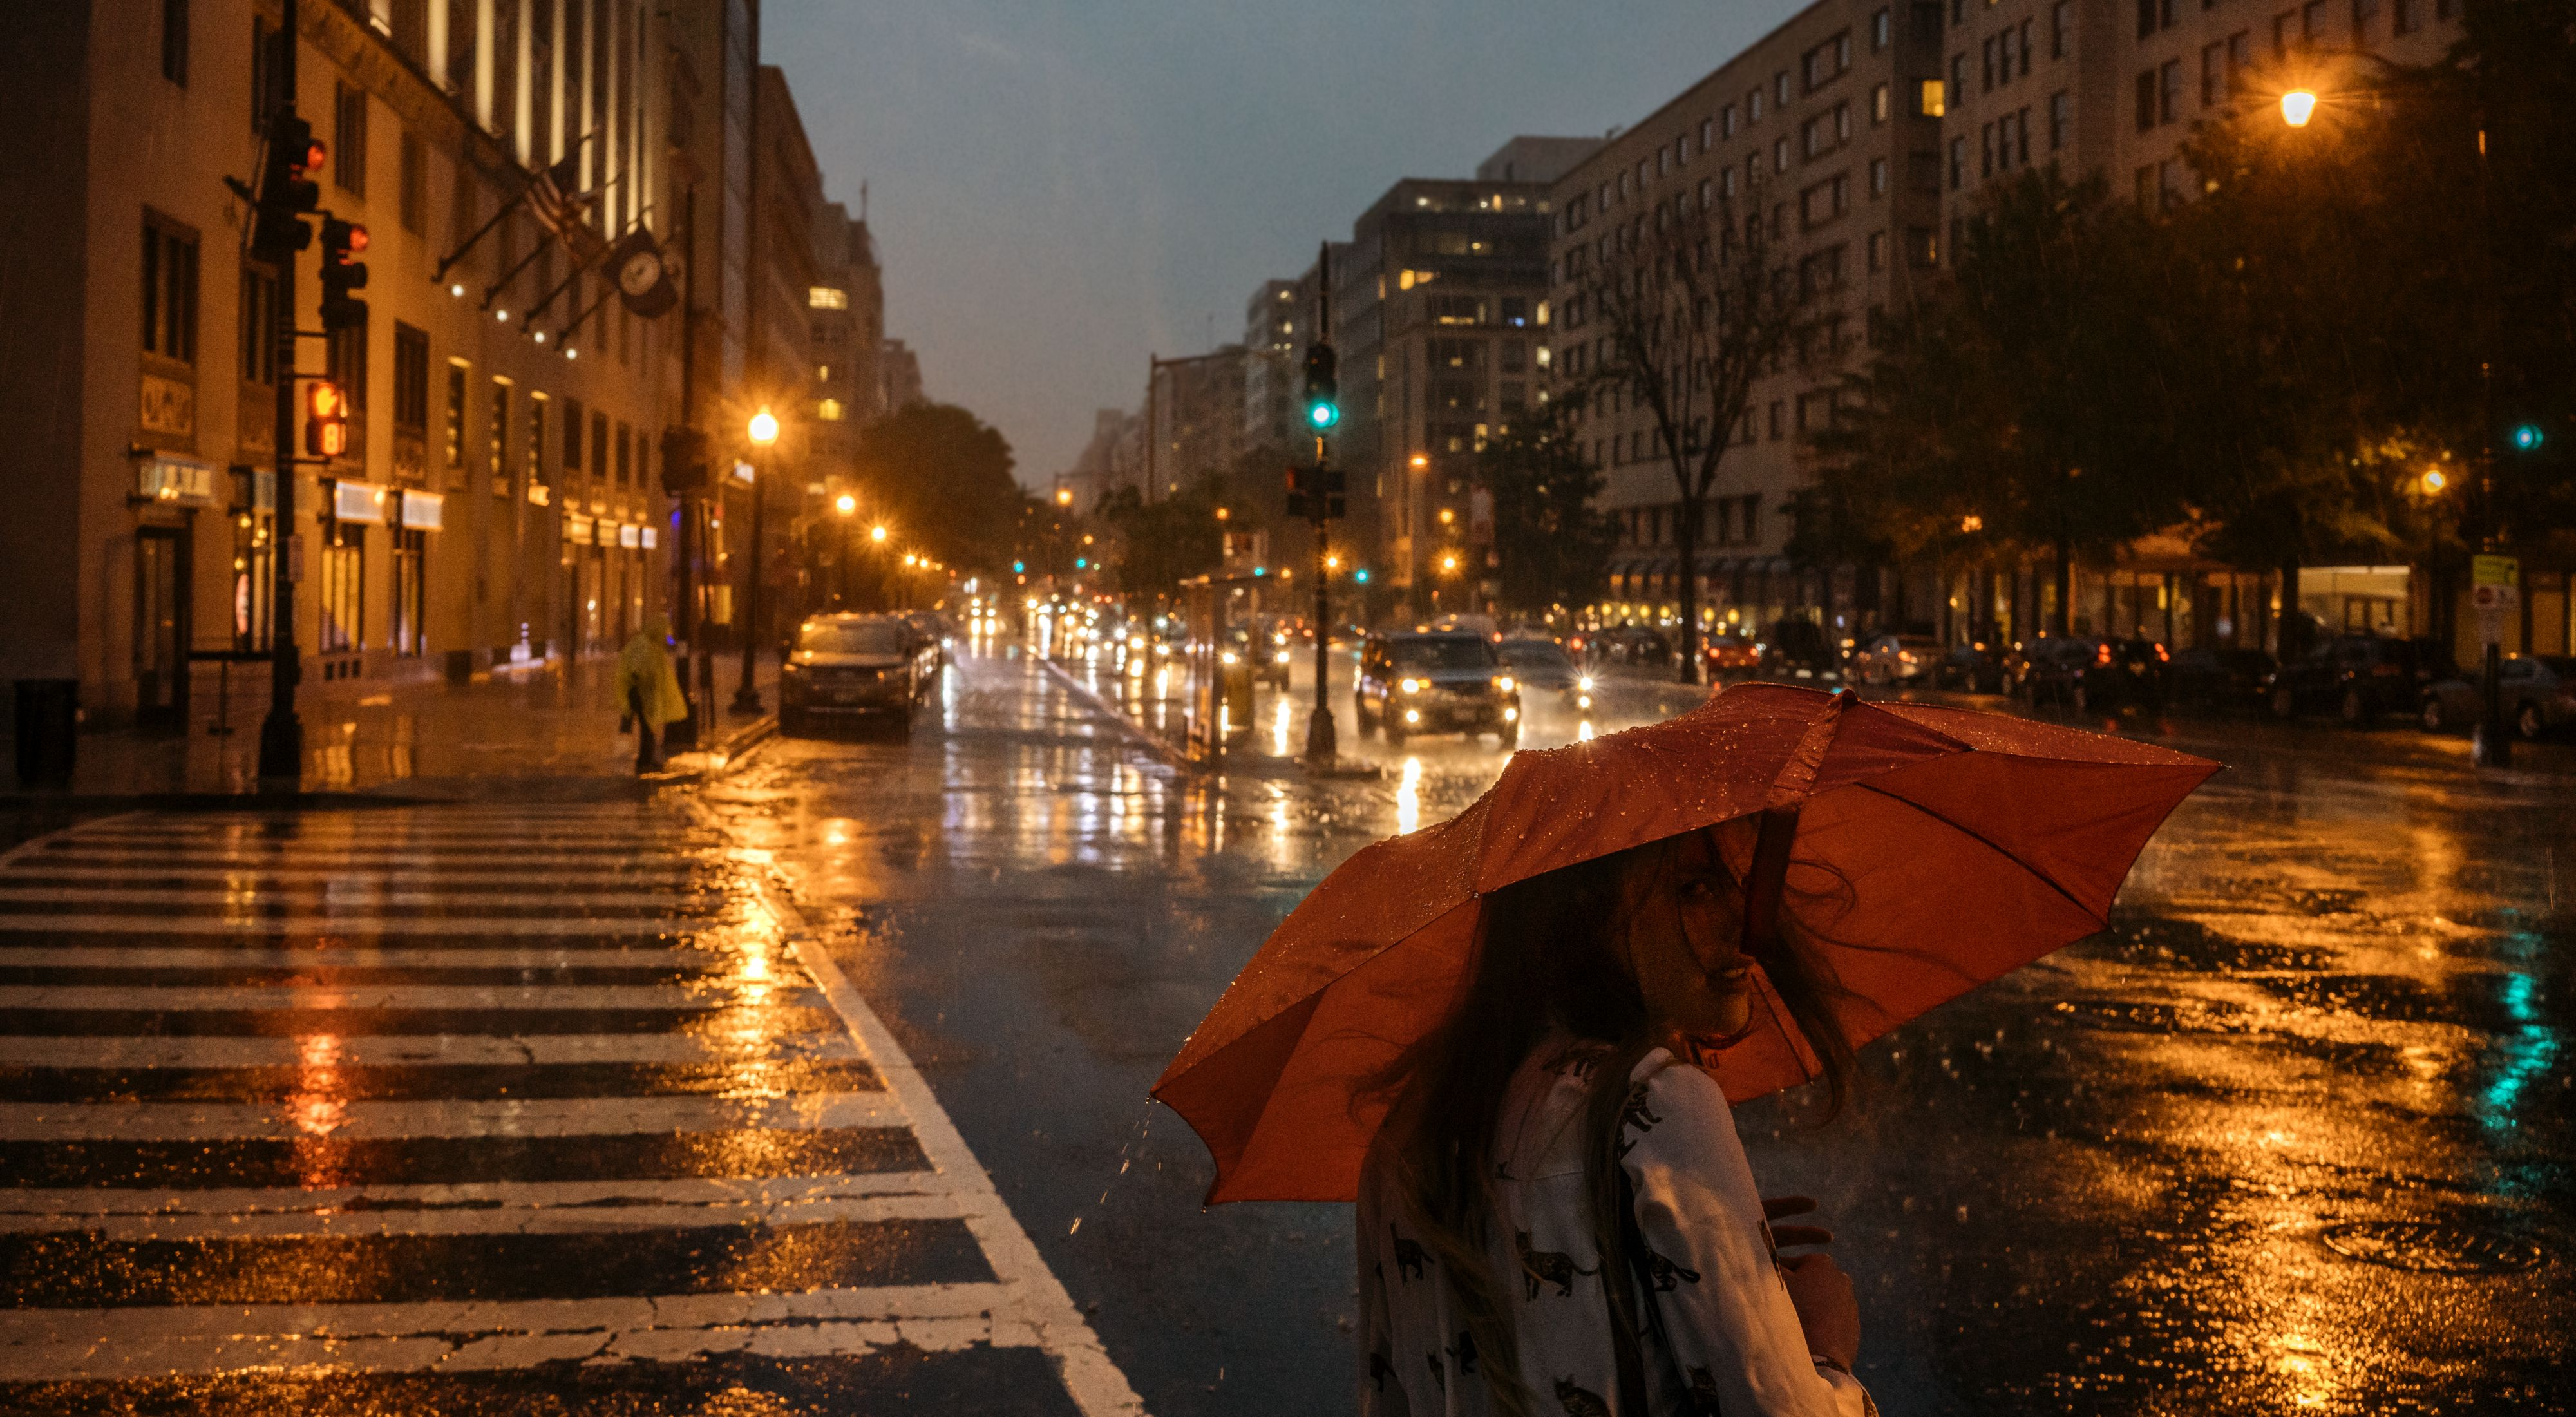 A person with a red umbrella crosses a city street at night